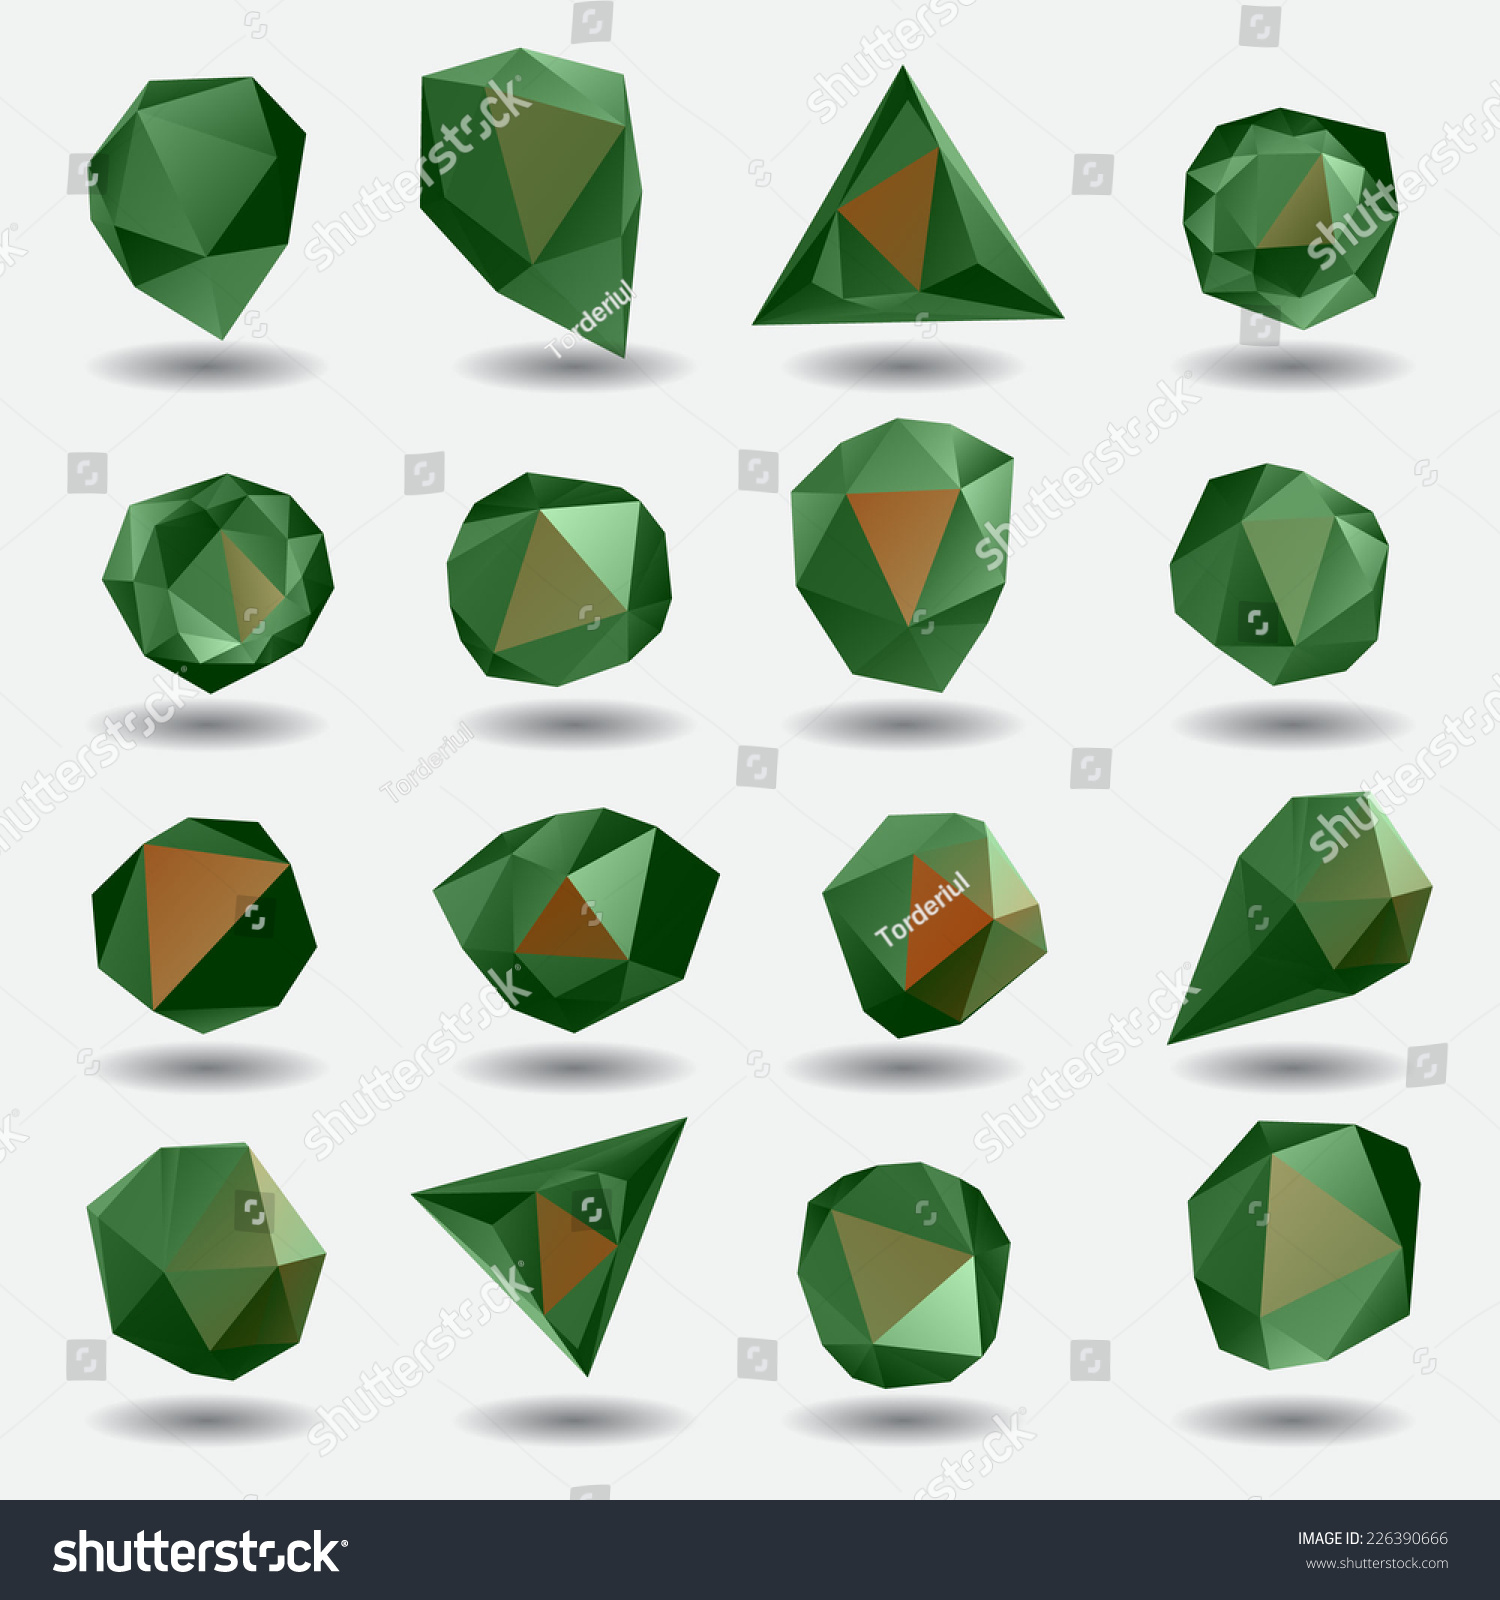 png green image free diamond downloads icons and